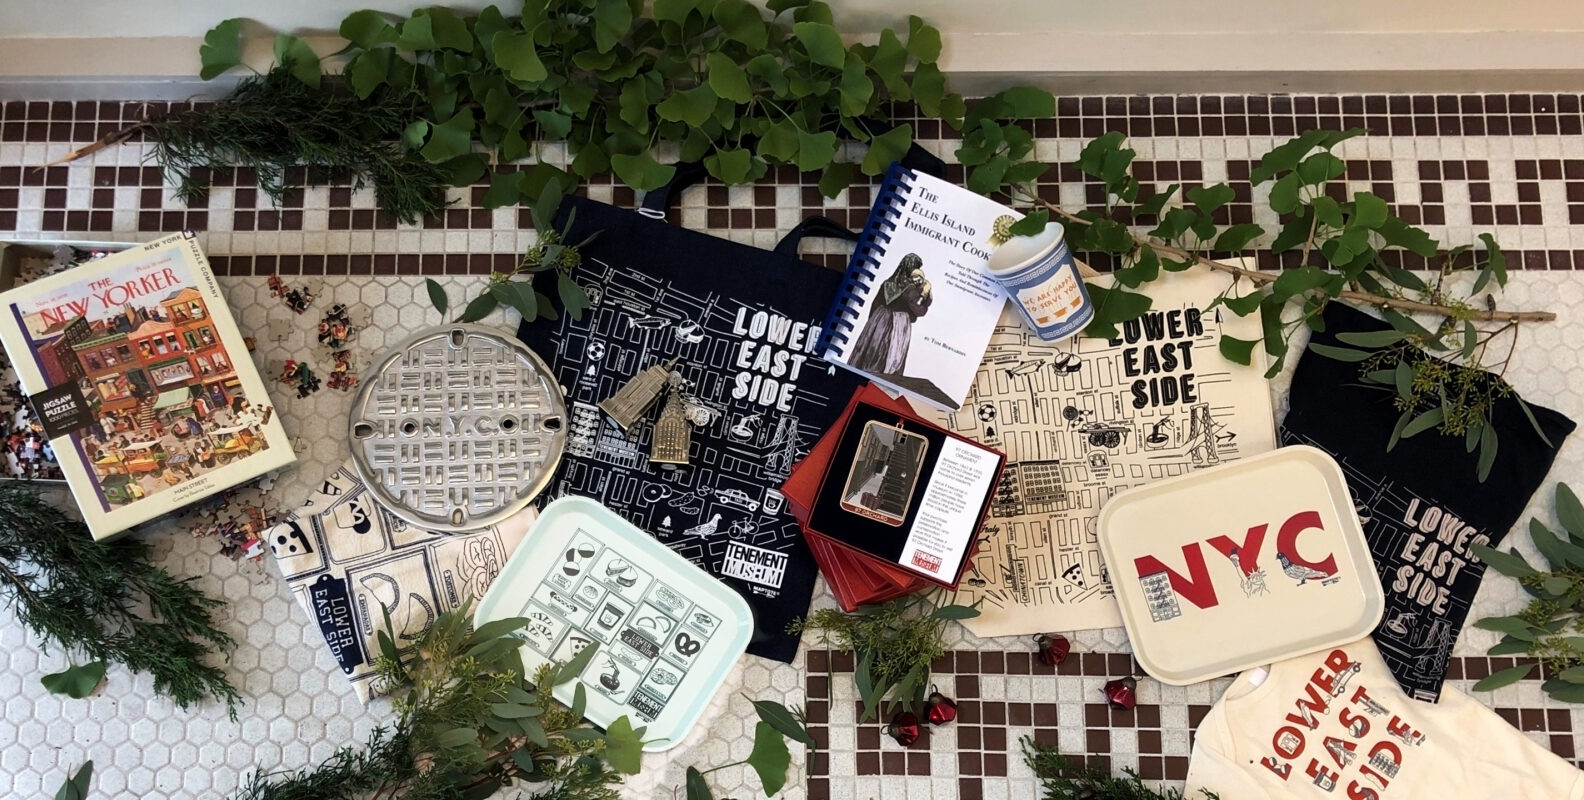 Spread of Tenement Museum merch tote bags, cups, and books